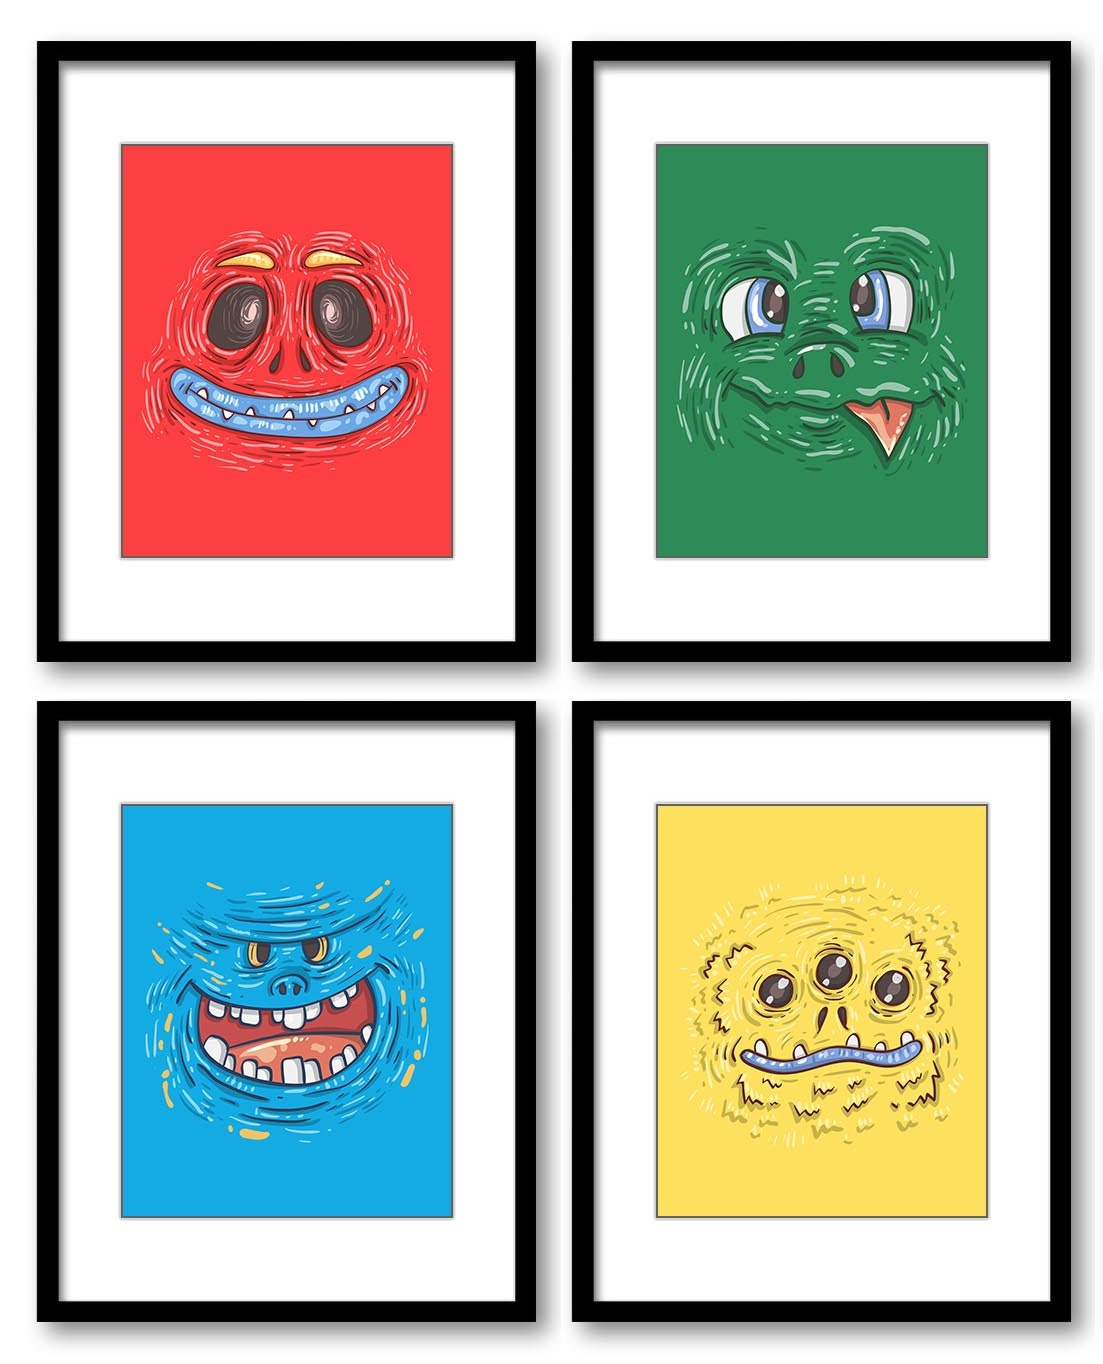 Colorful Monsters Nursery Art Set of 4 Prints Boy Child Kid Boy Room Wall Decor Red Blue Green Yello